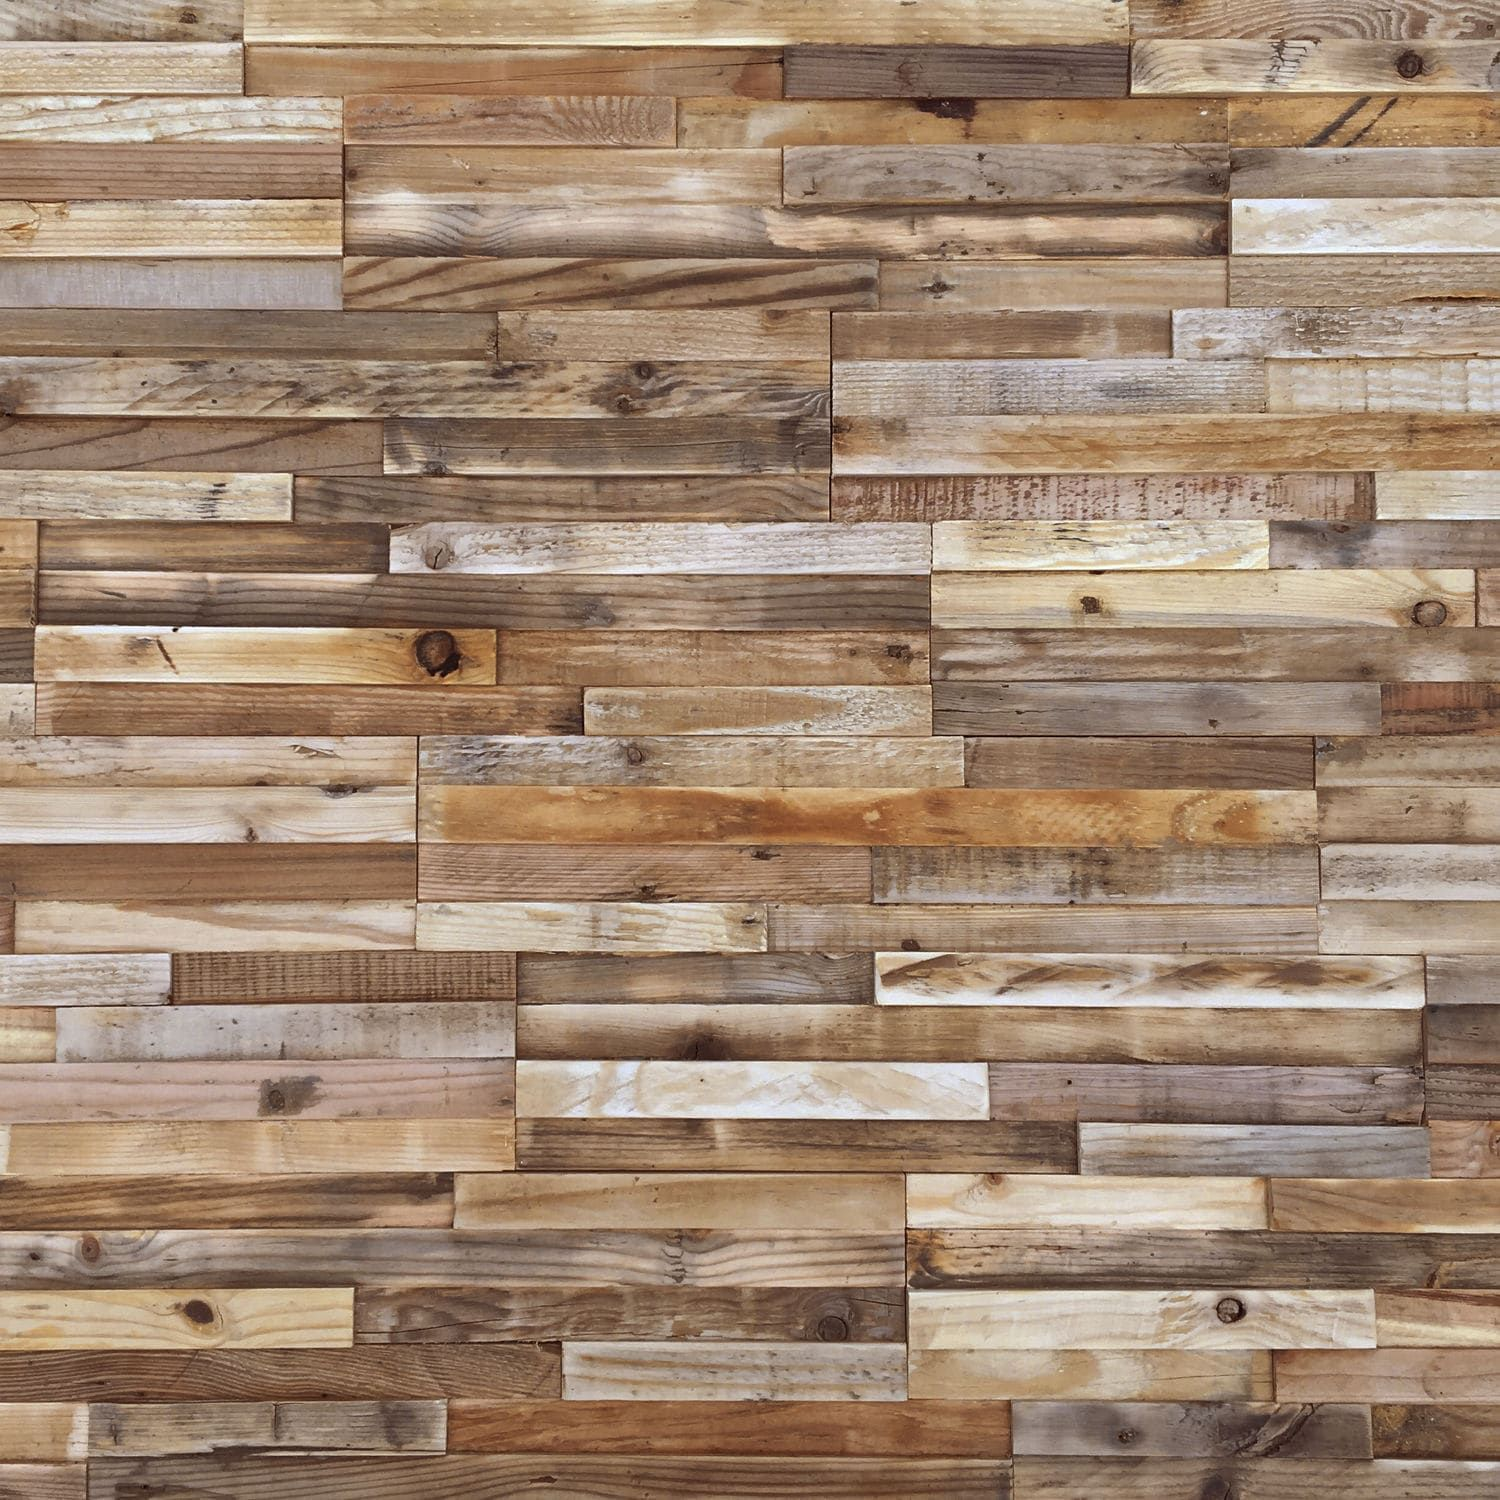 Decorative Panel Wood Wall Mounted Textured Stripes Timberwall